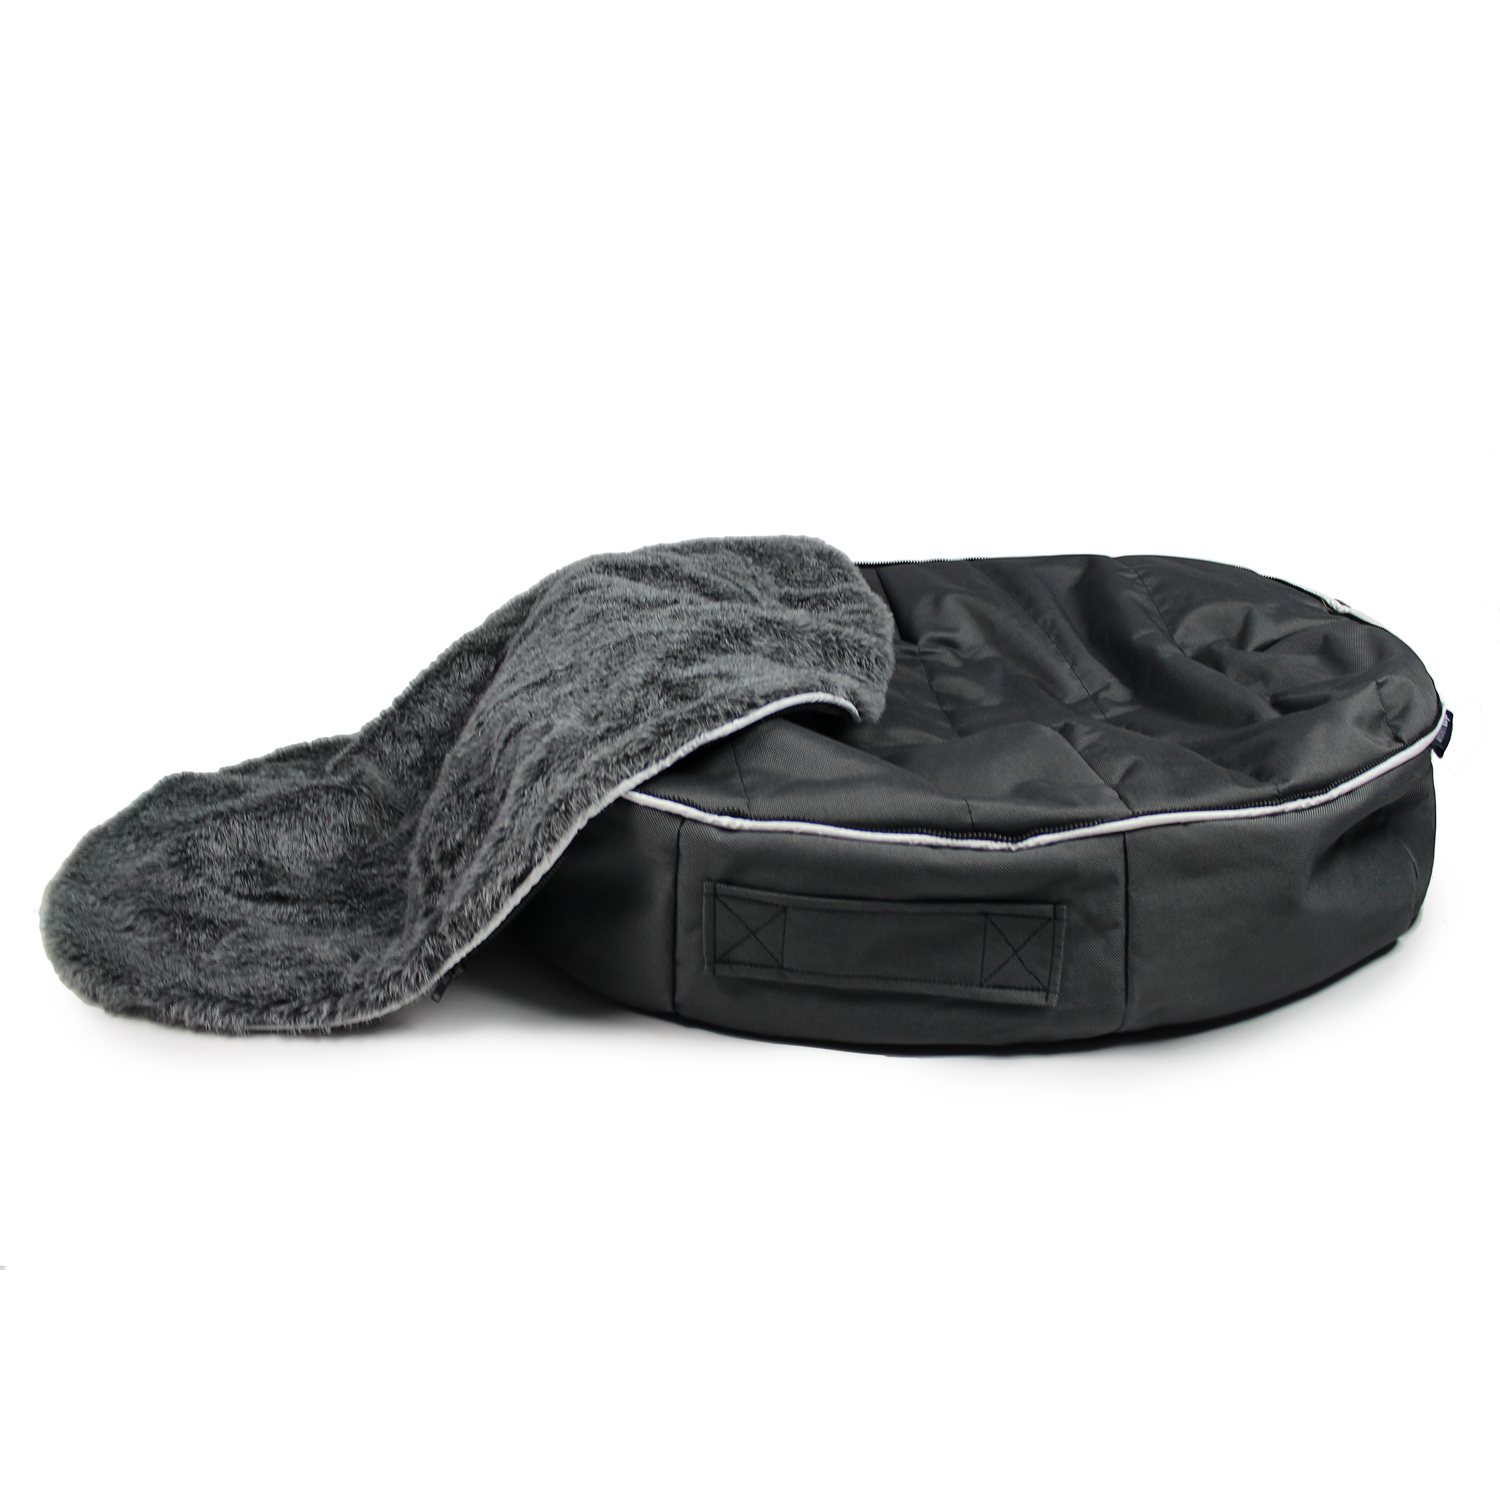 Pet Beds Dog Beds Designer Dog Bean Bags Medium Size